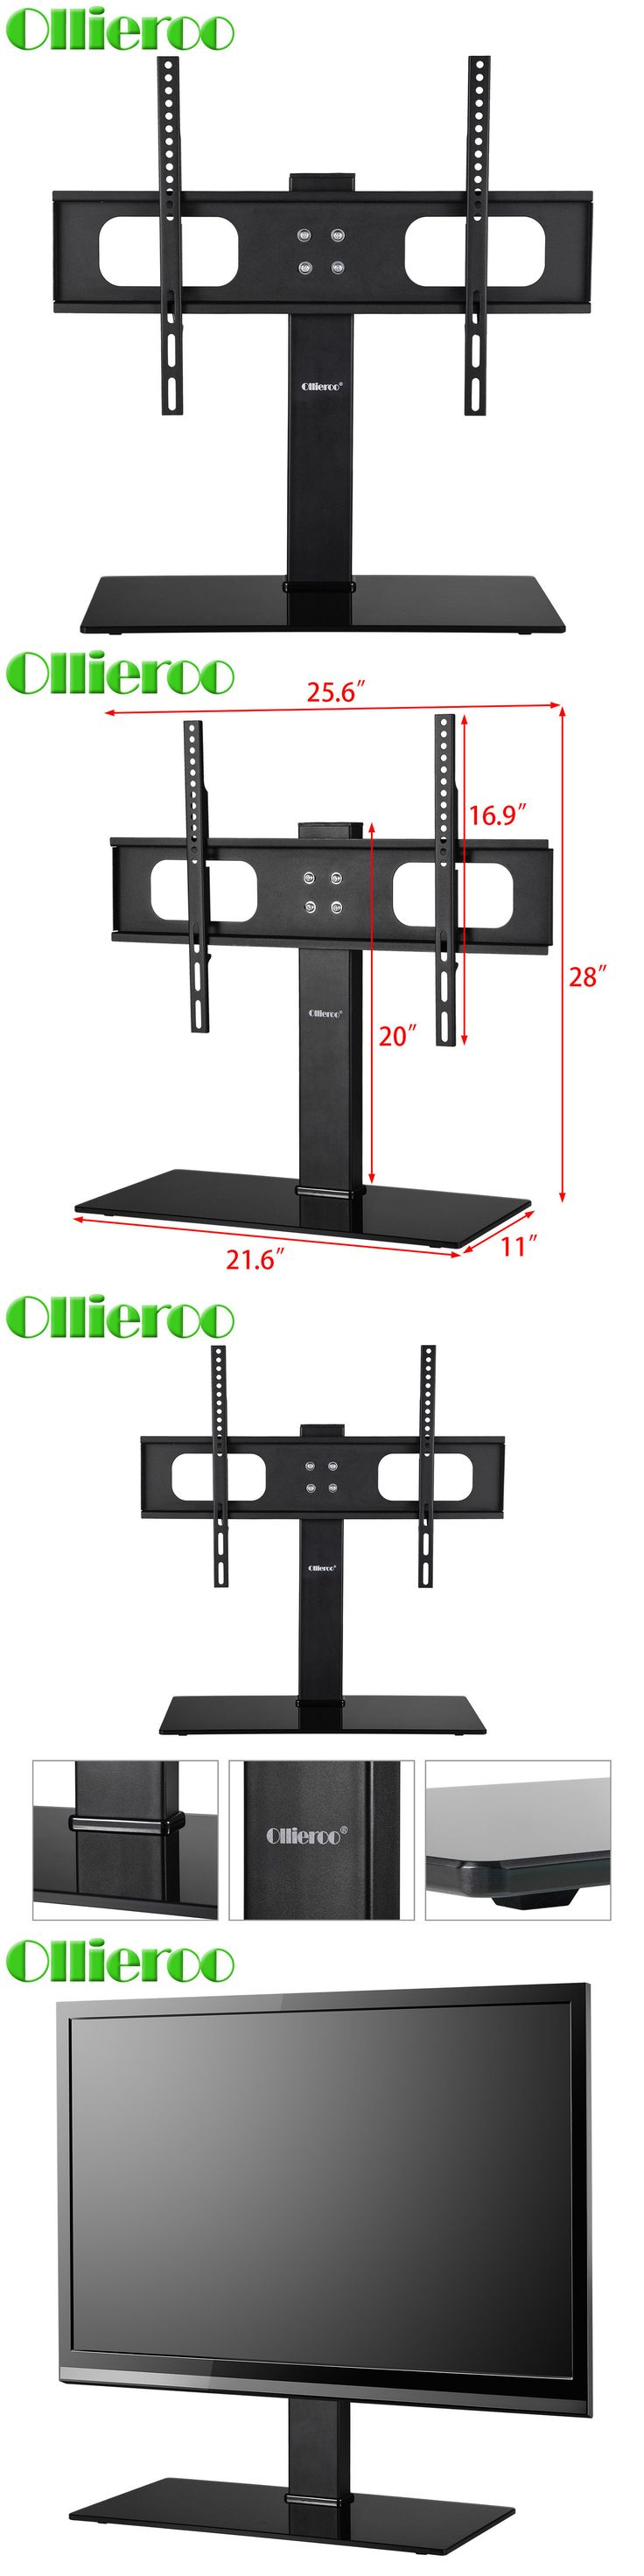 TV Mounts and Brackets: 27-70 Universal Tabletop Tv Stand Base With Mount 110 Lbs Height Adjustable -> BUY IT NOW ONLY: $31.69 on eBay!